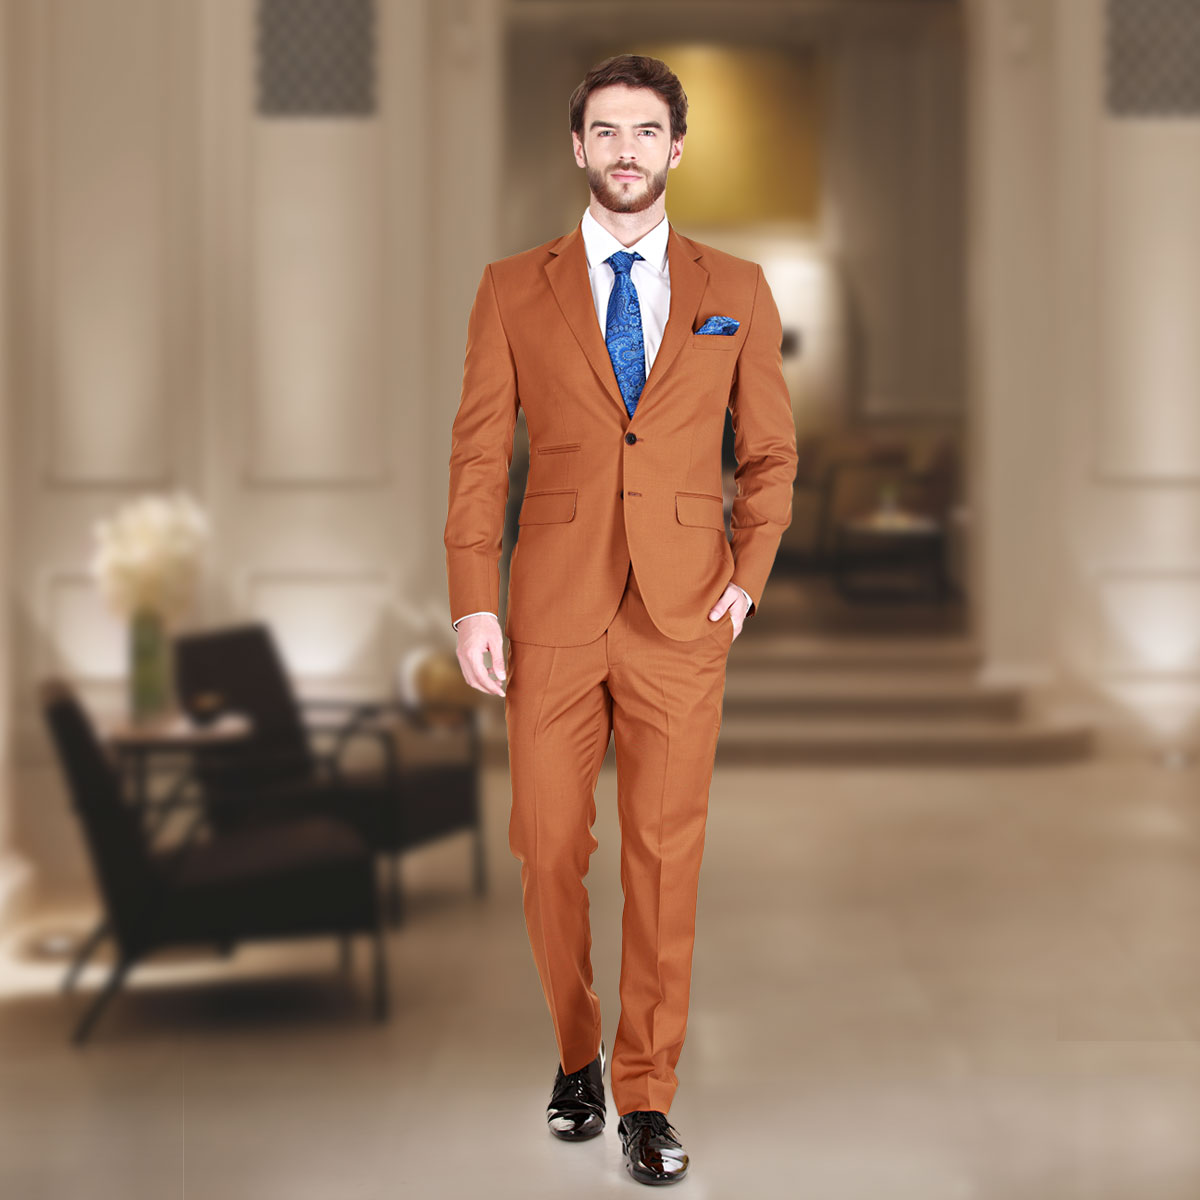 Tailor italian wear online shop